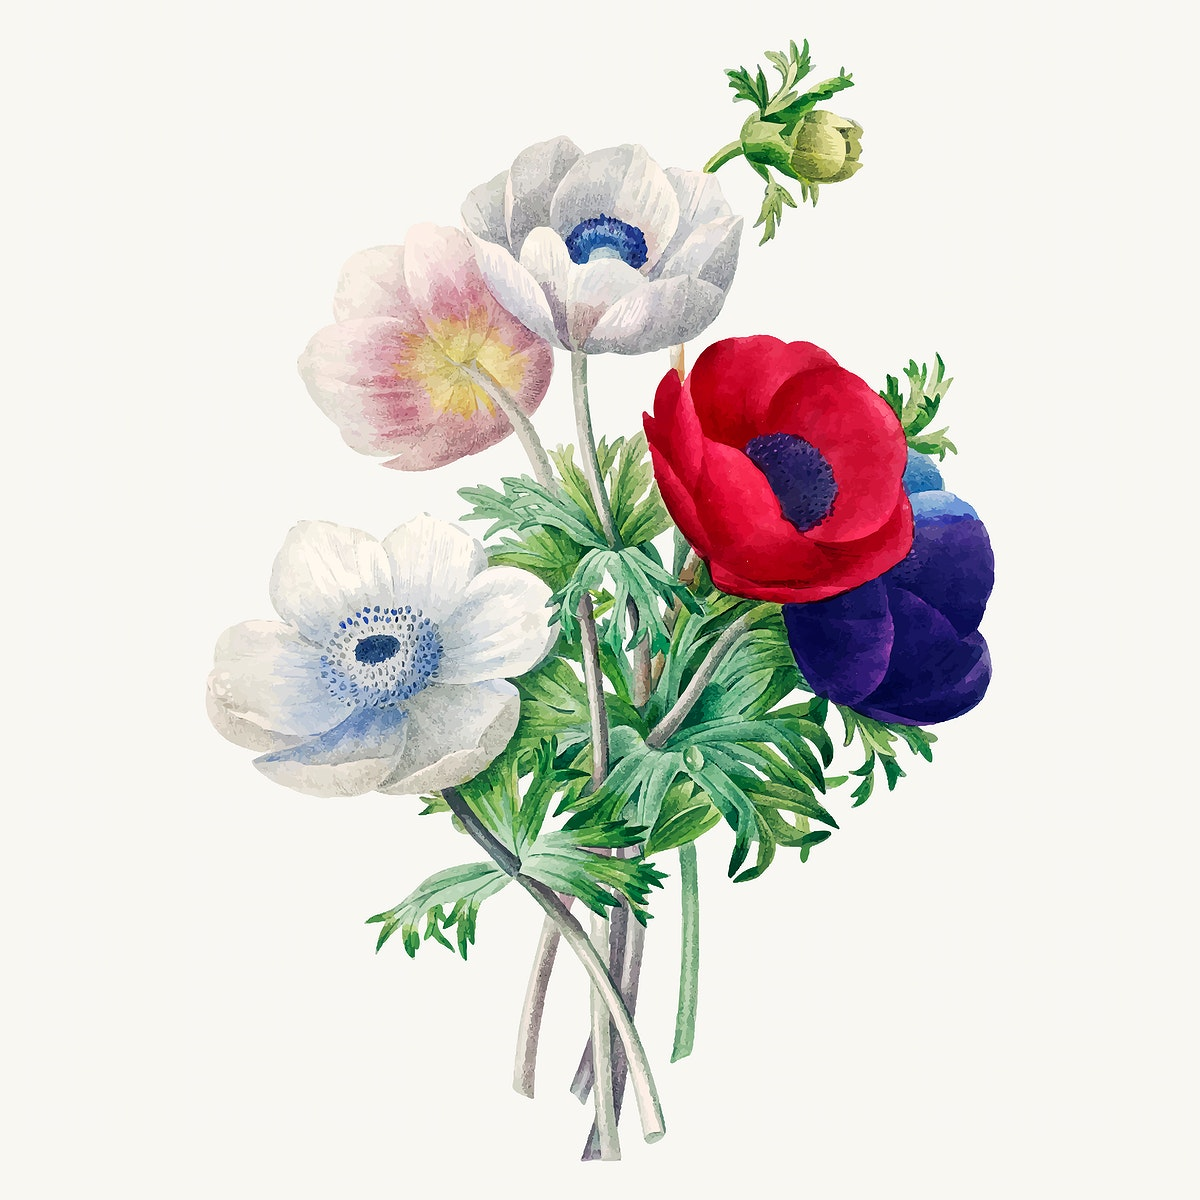 Anemone flower botanical vector, remixed from artworks by Pierre-Joseph Redouté